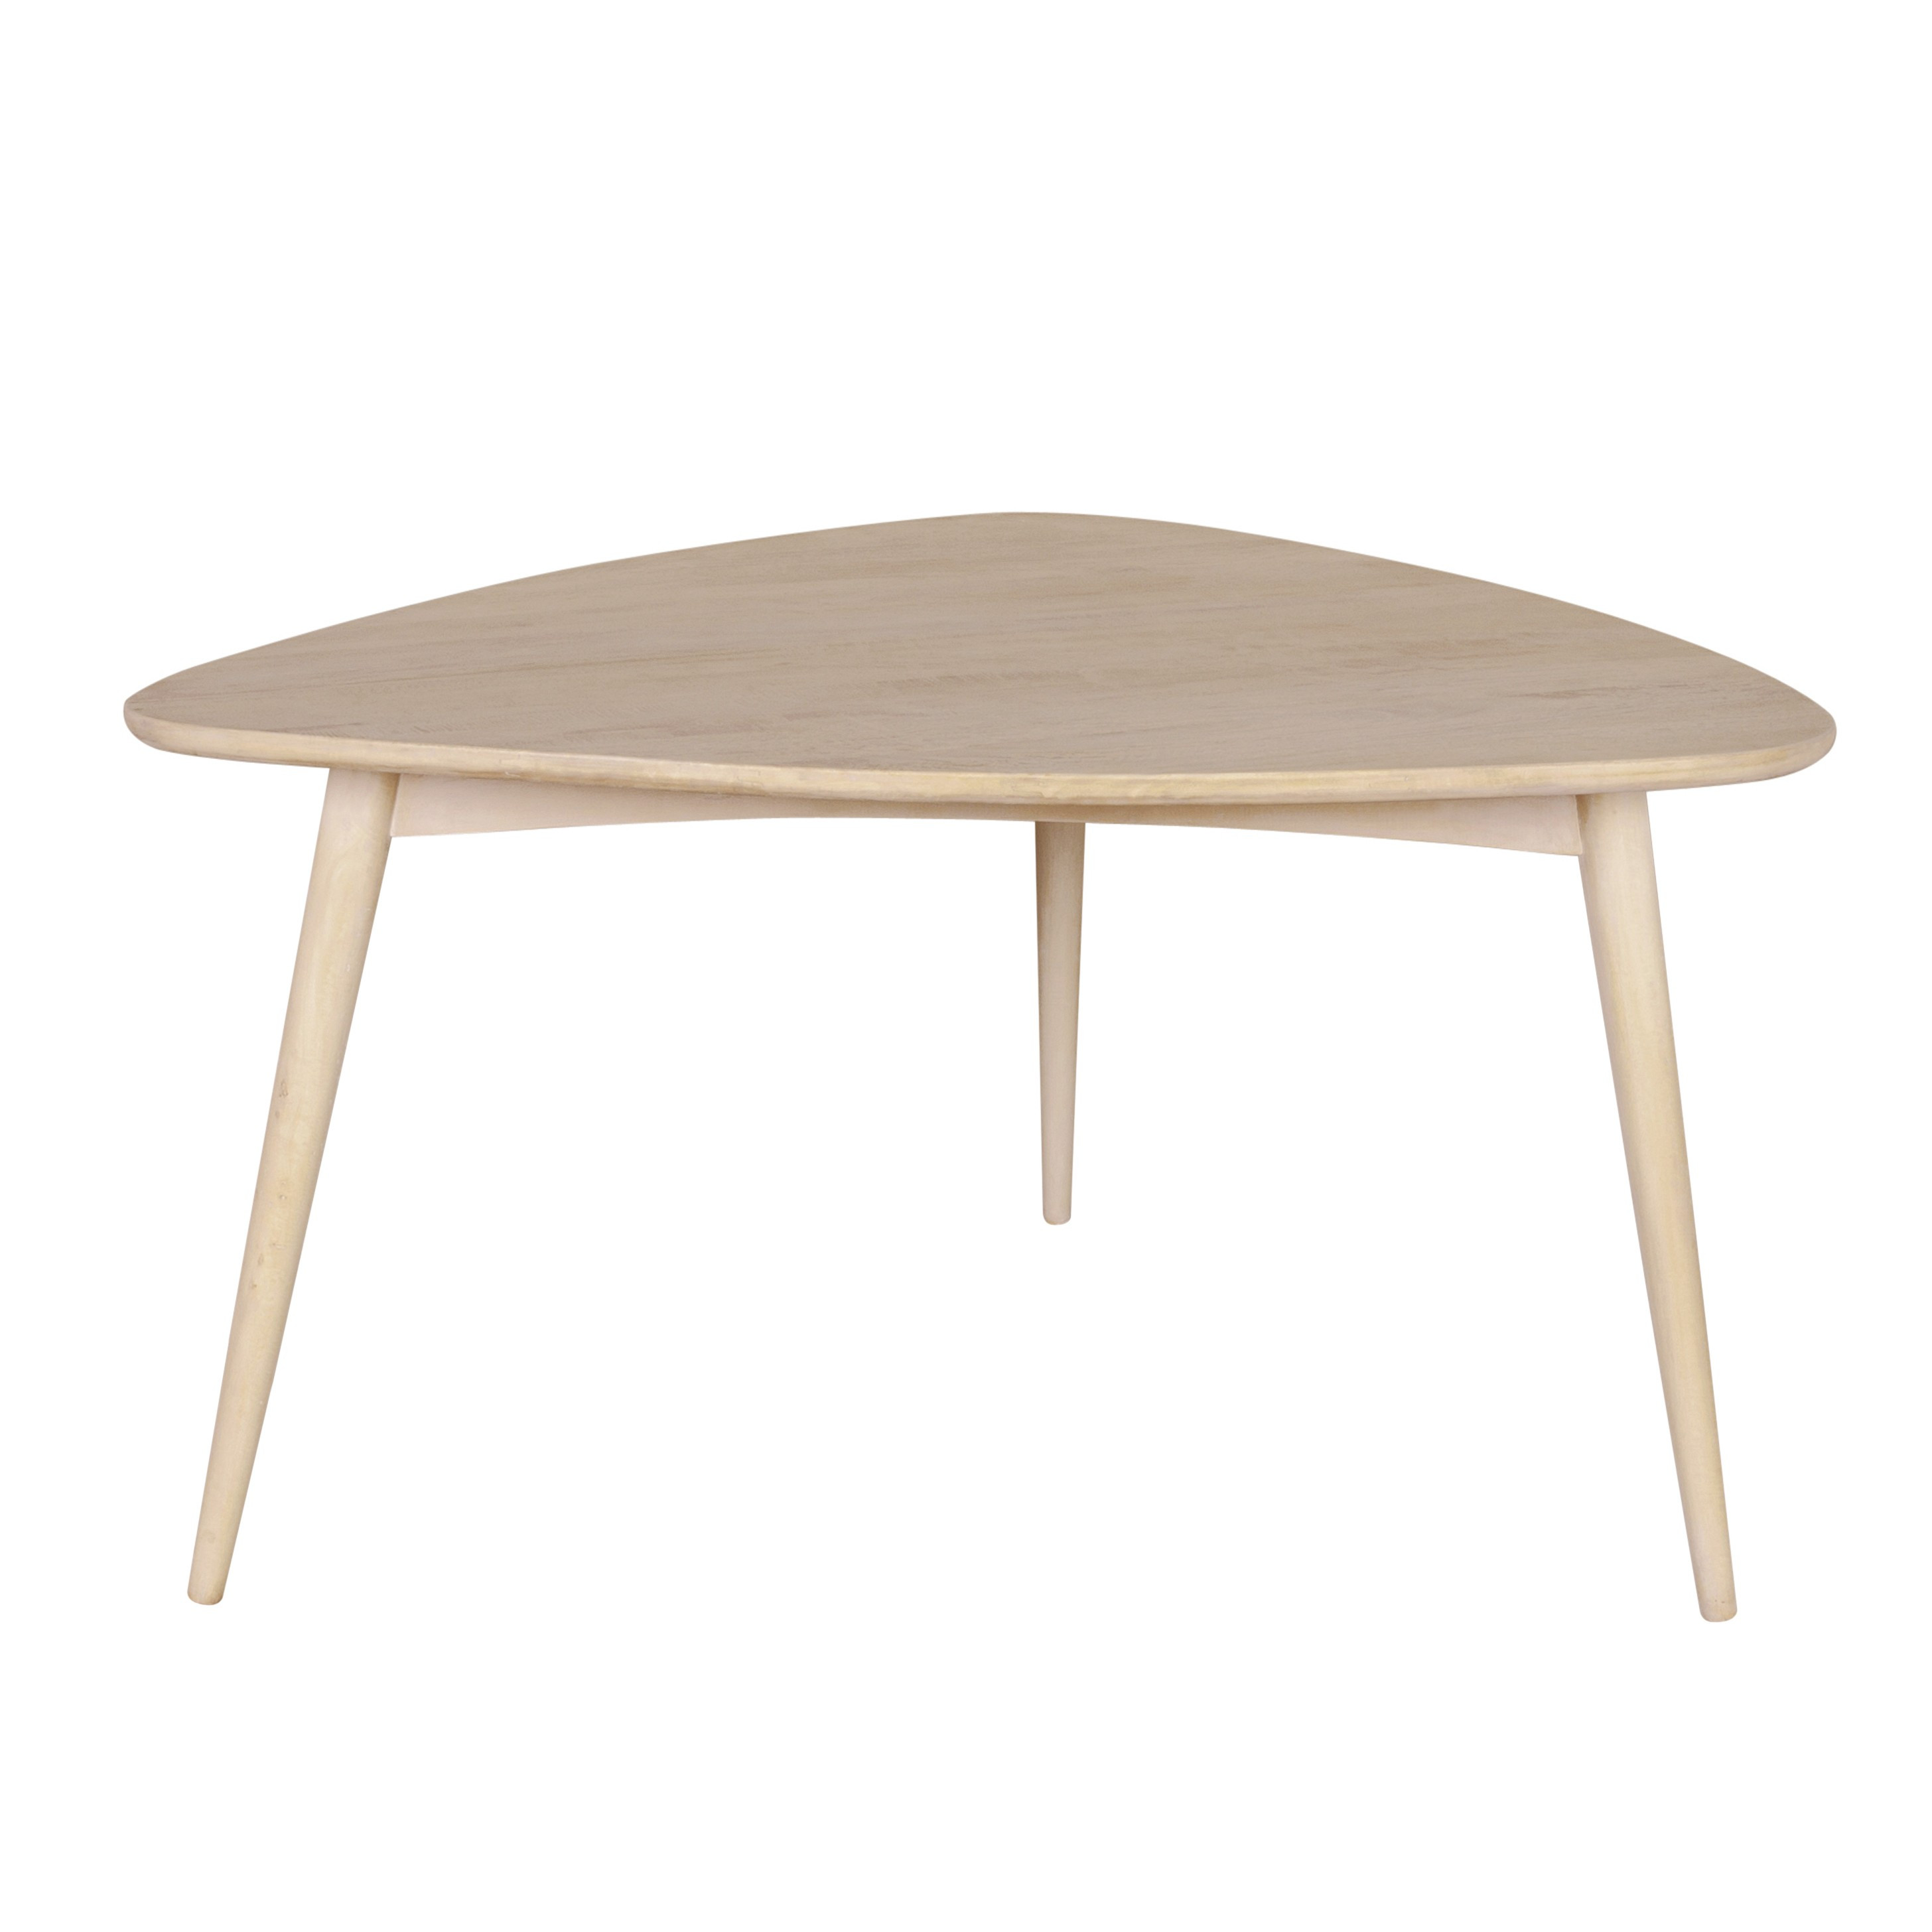 Triangle dining tables images dining table ideas - Triangle dining table ...